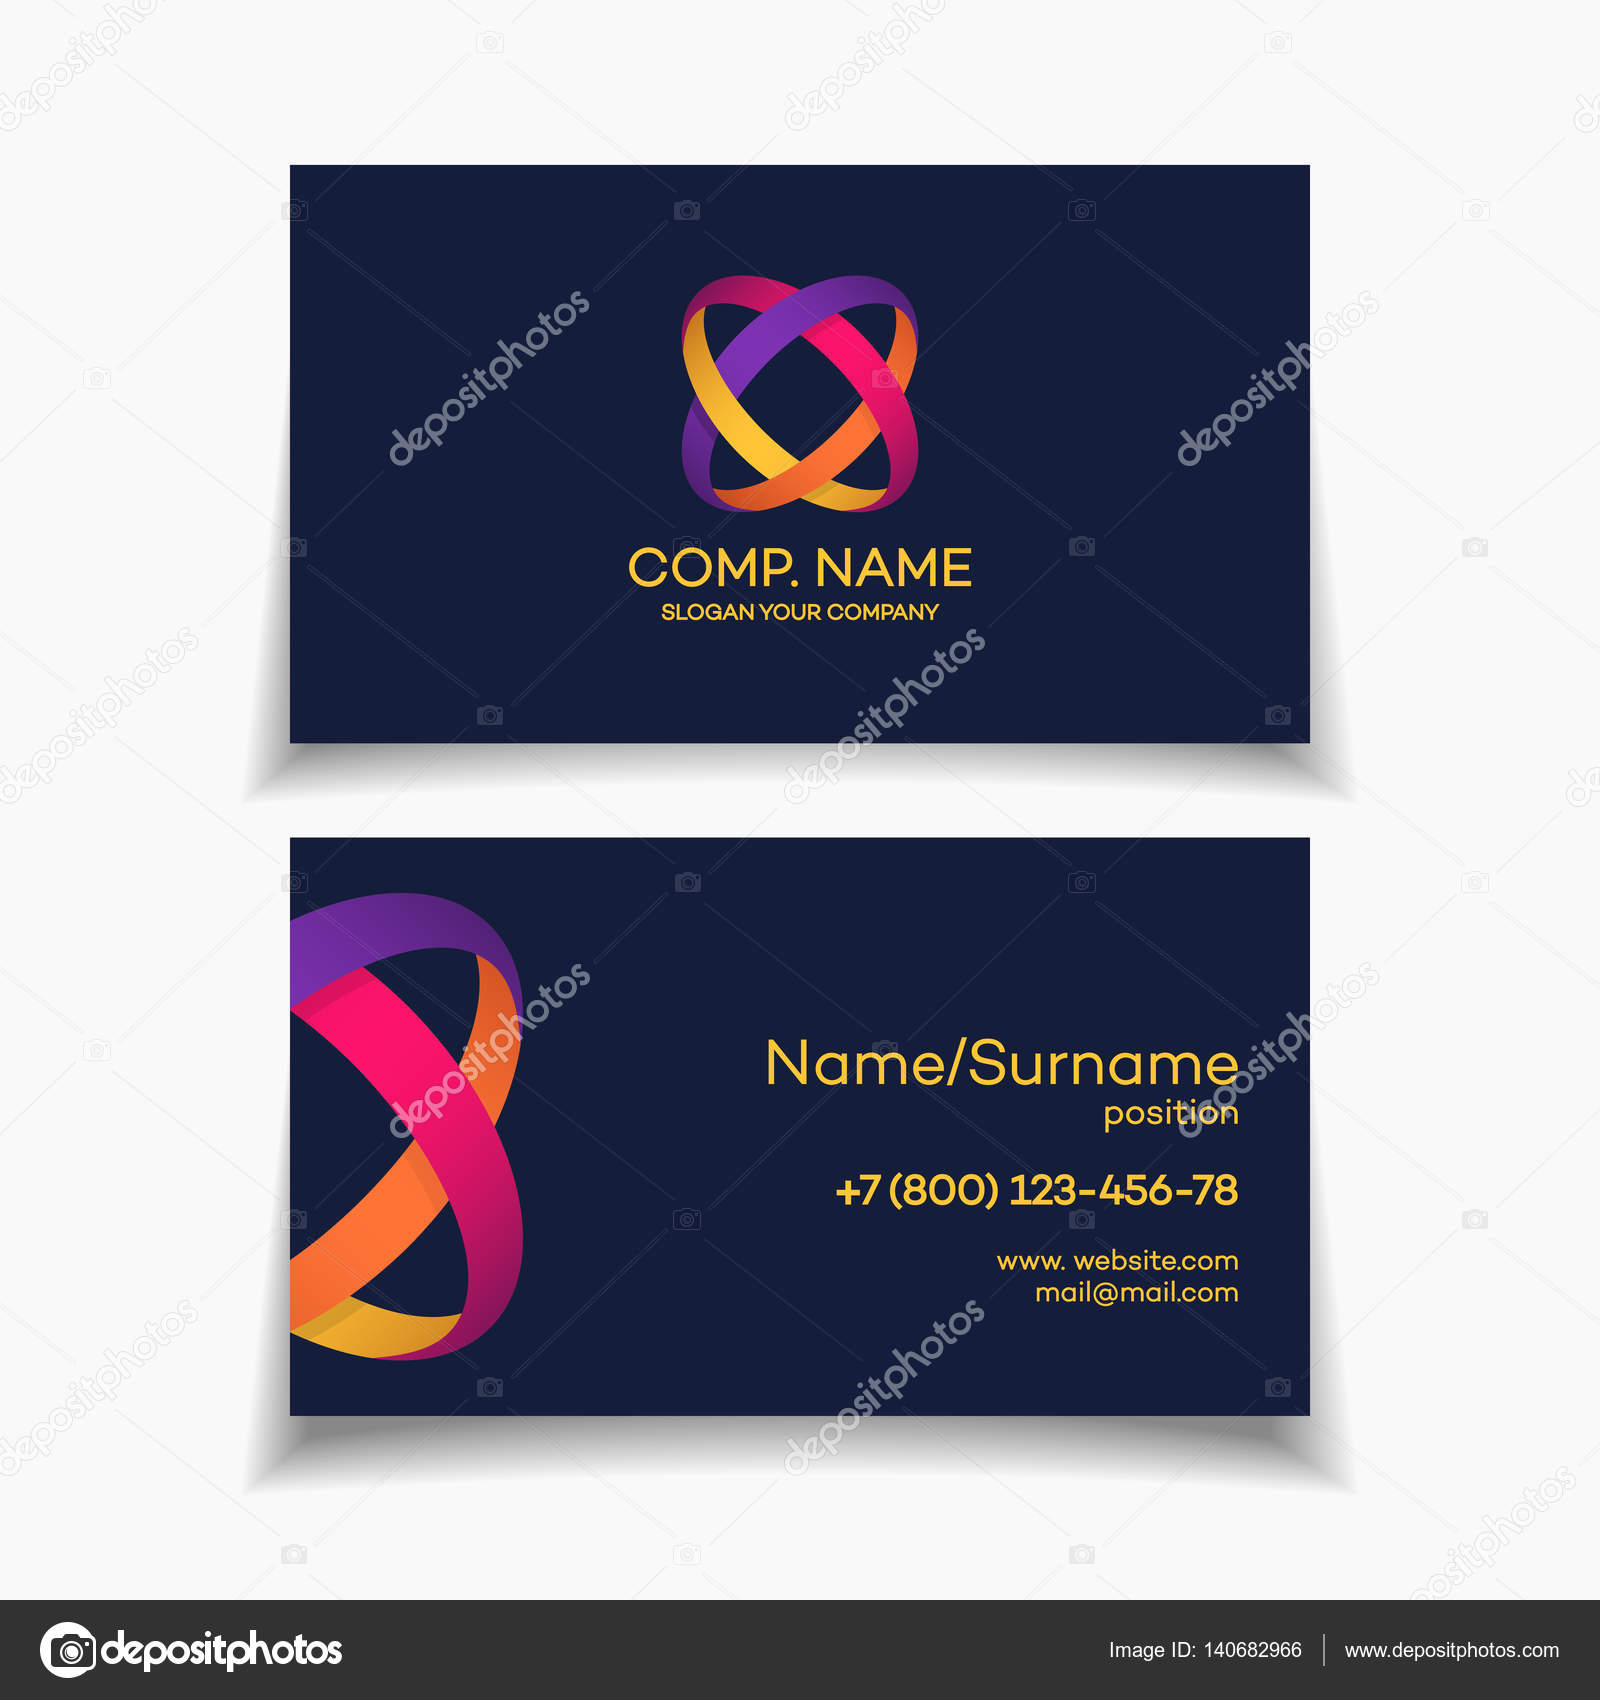 Business card template with two circle colorful abstract logo business card design template with two circle colorful abstract logo on dark background used for corporate identity marketing firm funds service magicingreecefo Image collections